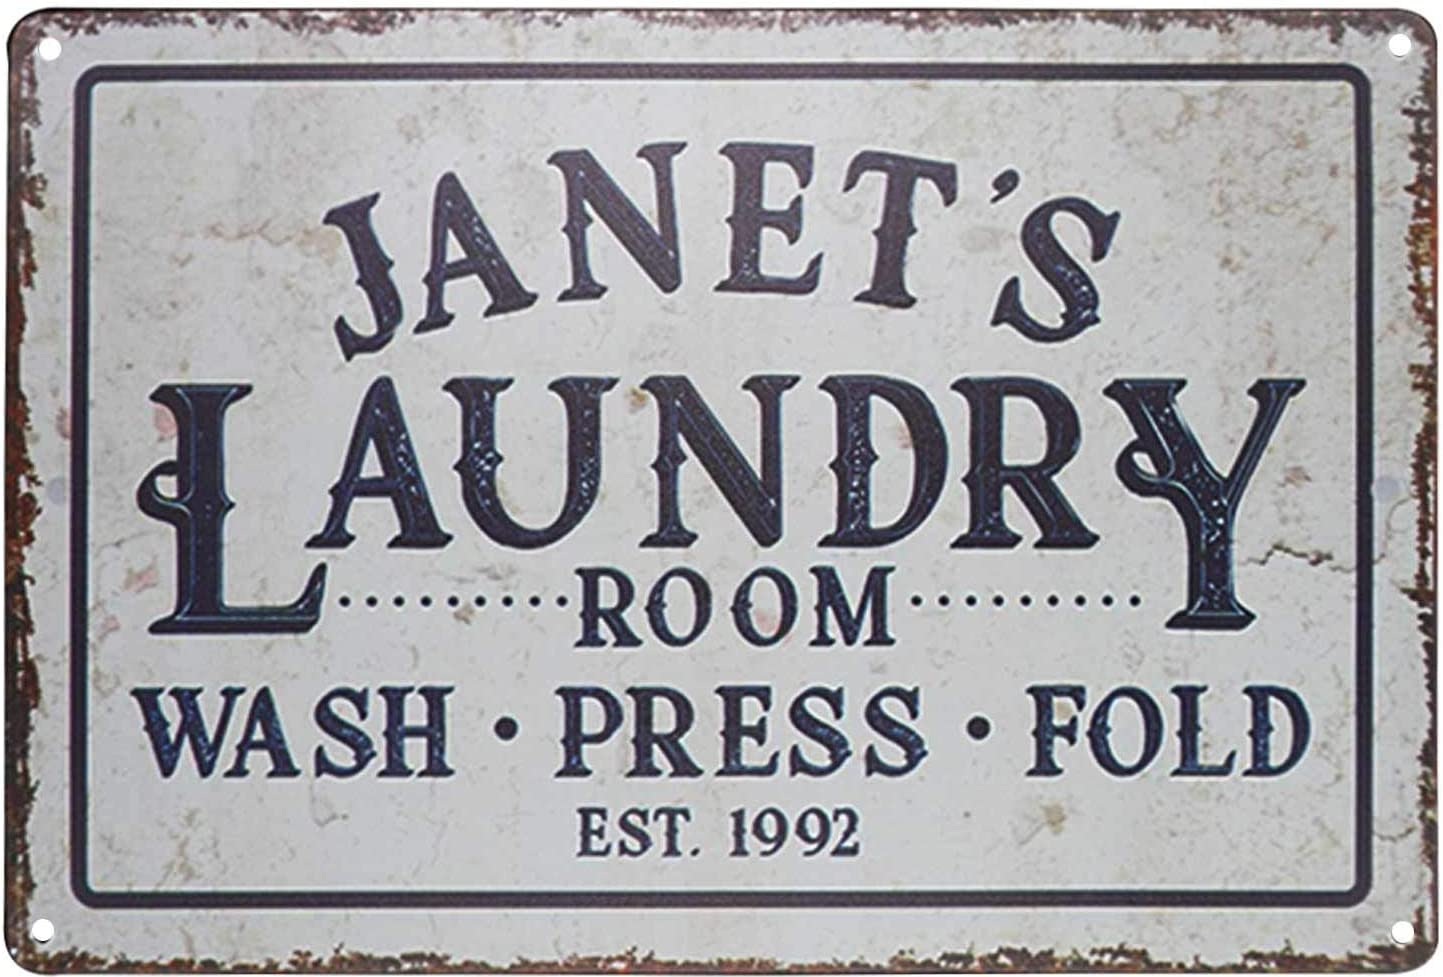 """PXIYOU Janet's Laundry Room Wash Press Fold Vintage Distressed Look Country Wall Decor Wash Room Signs 8""""X 12"""" Inches"""